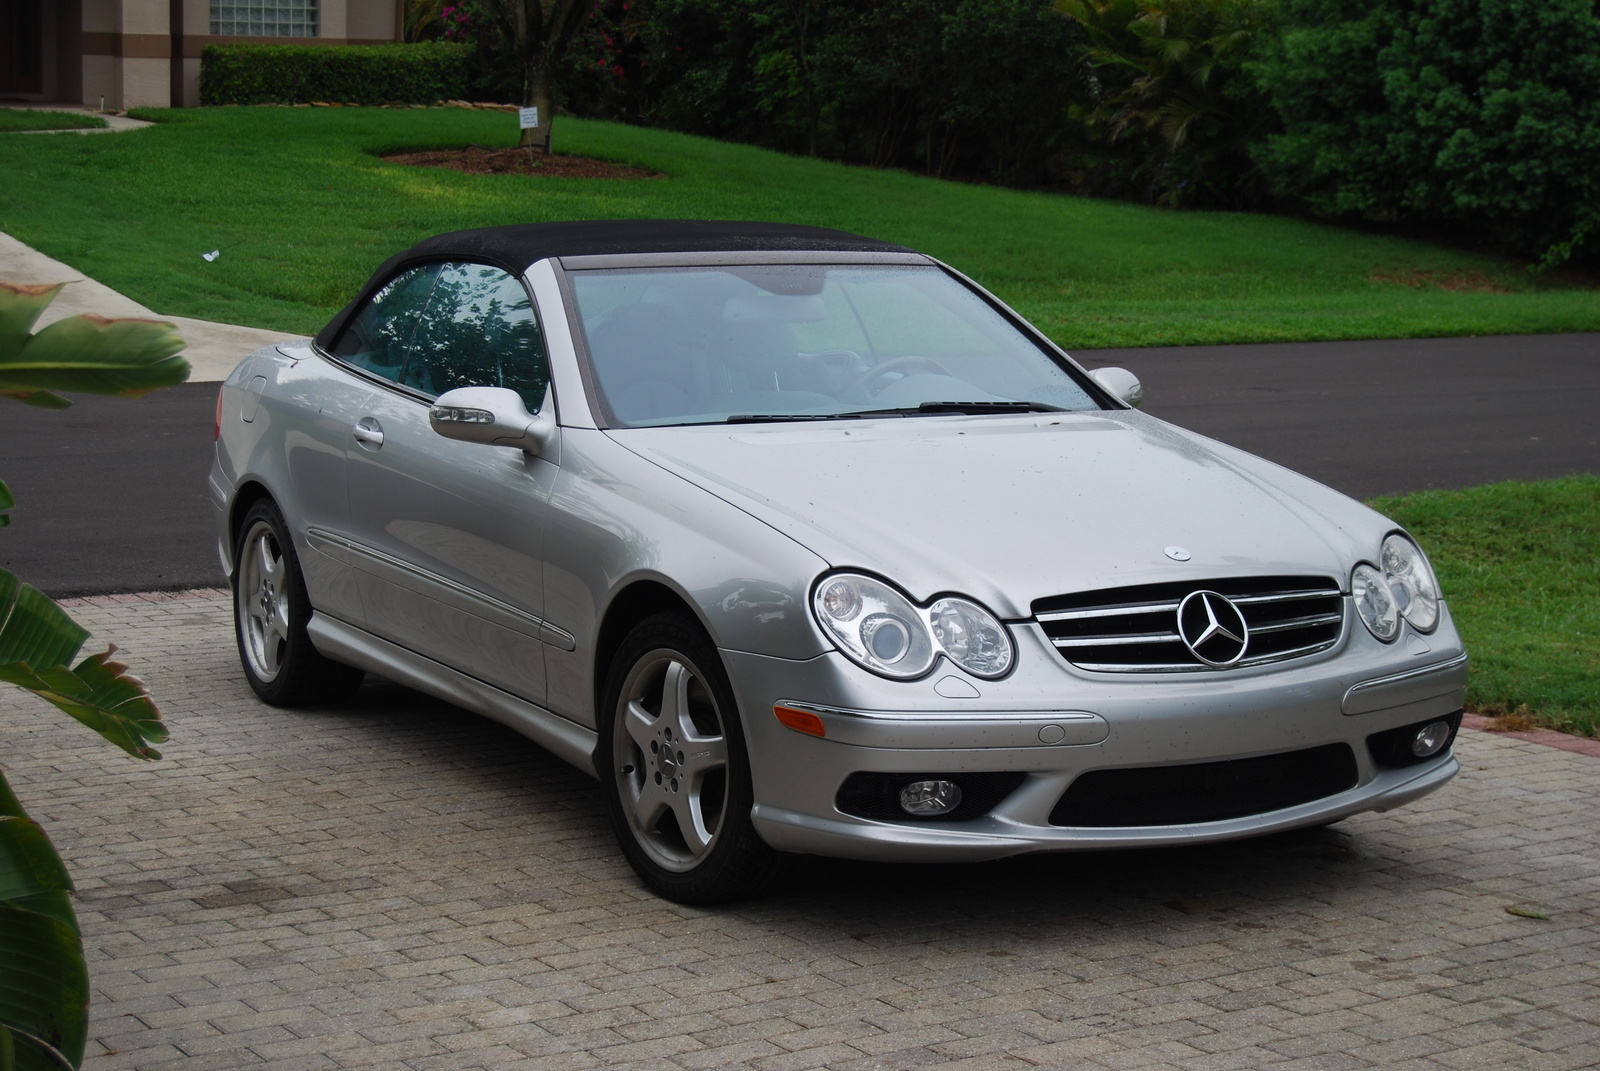 2004 mercedes benz clk class pictures cargurus for Mercedes benz clk 2012